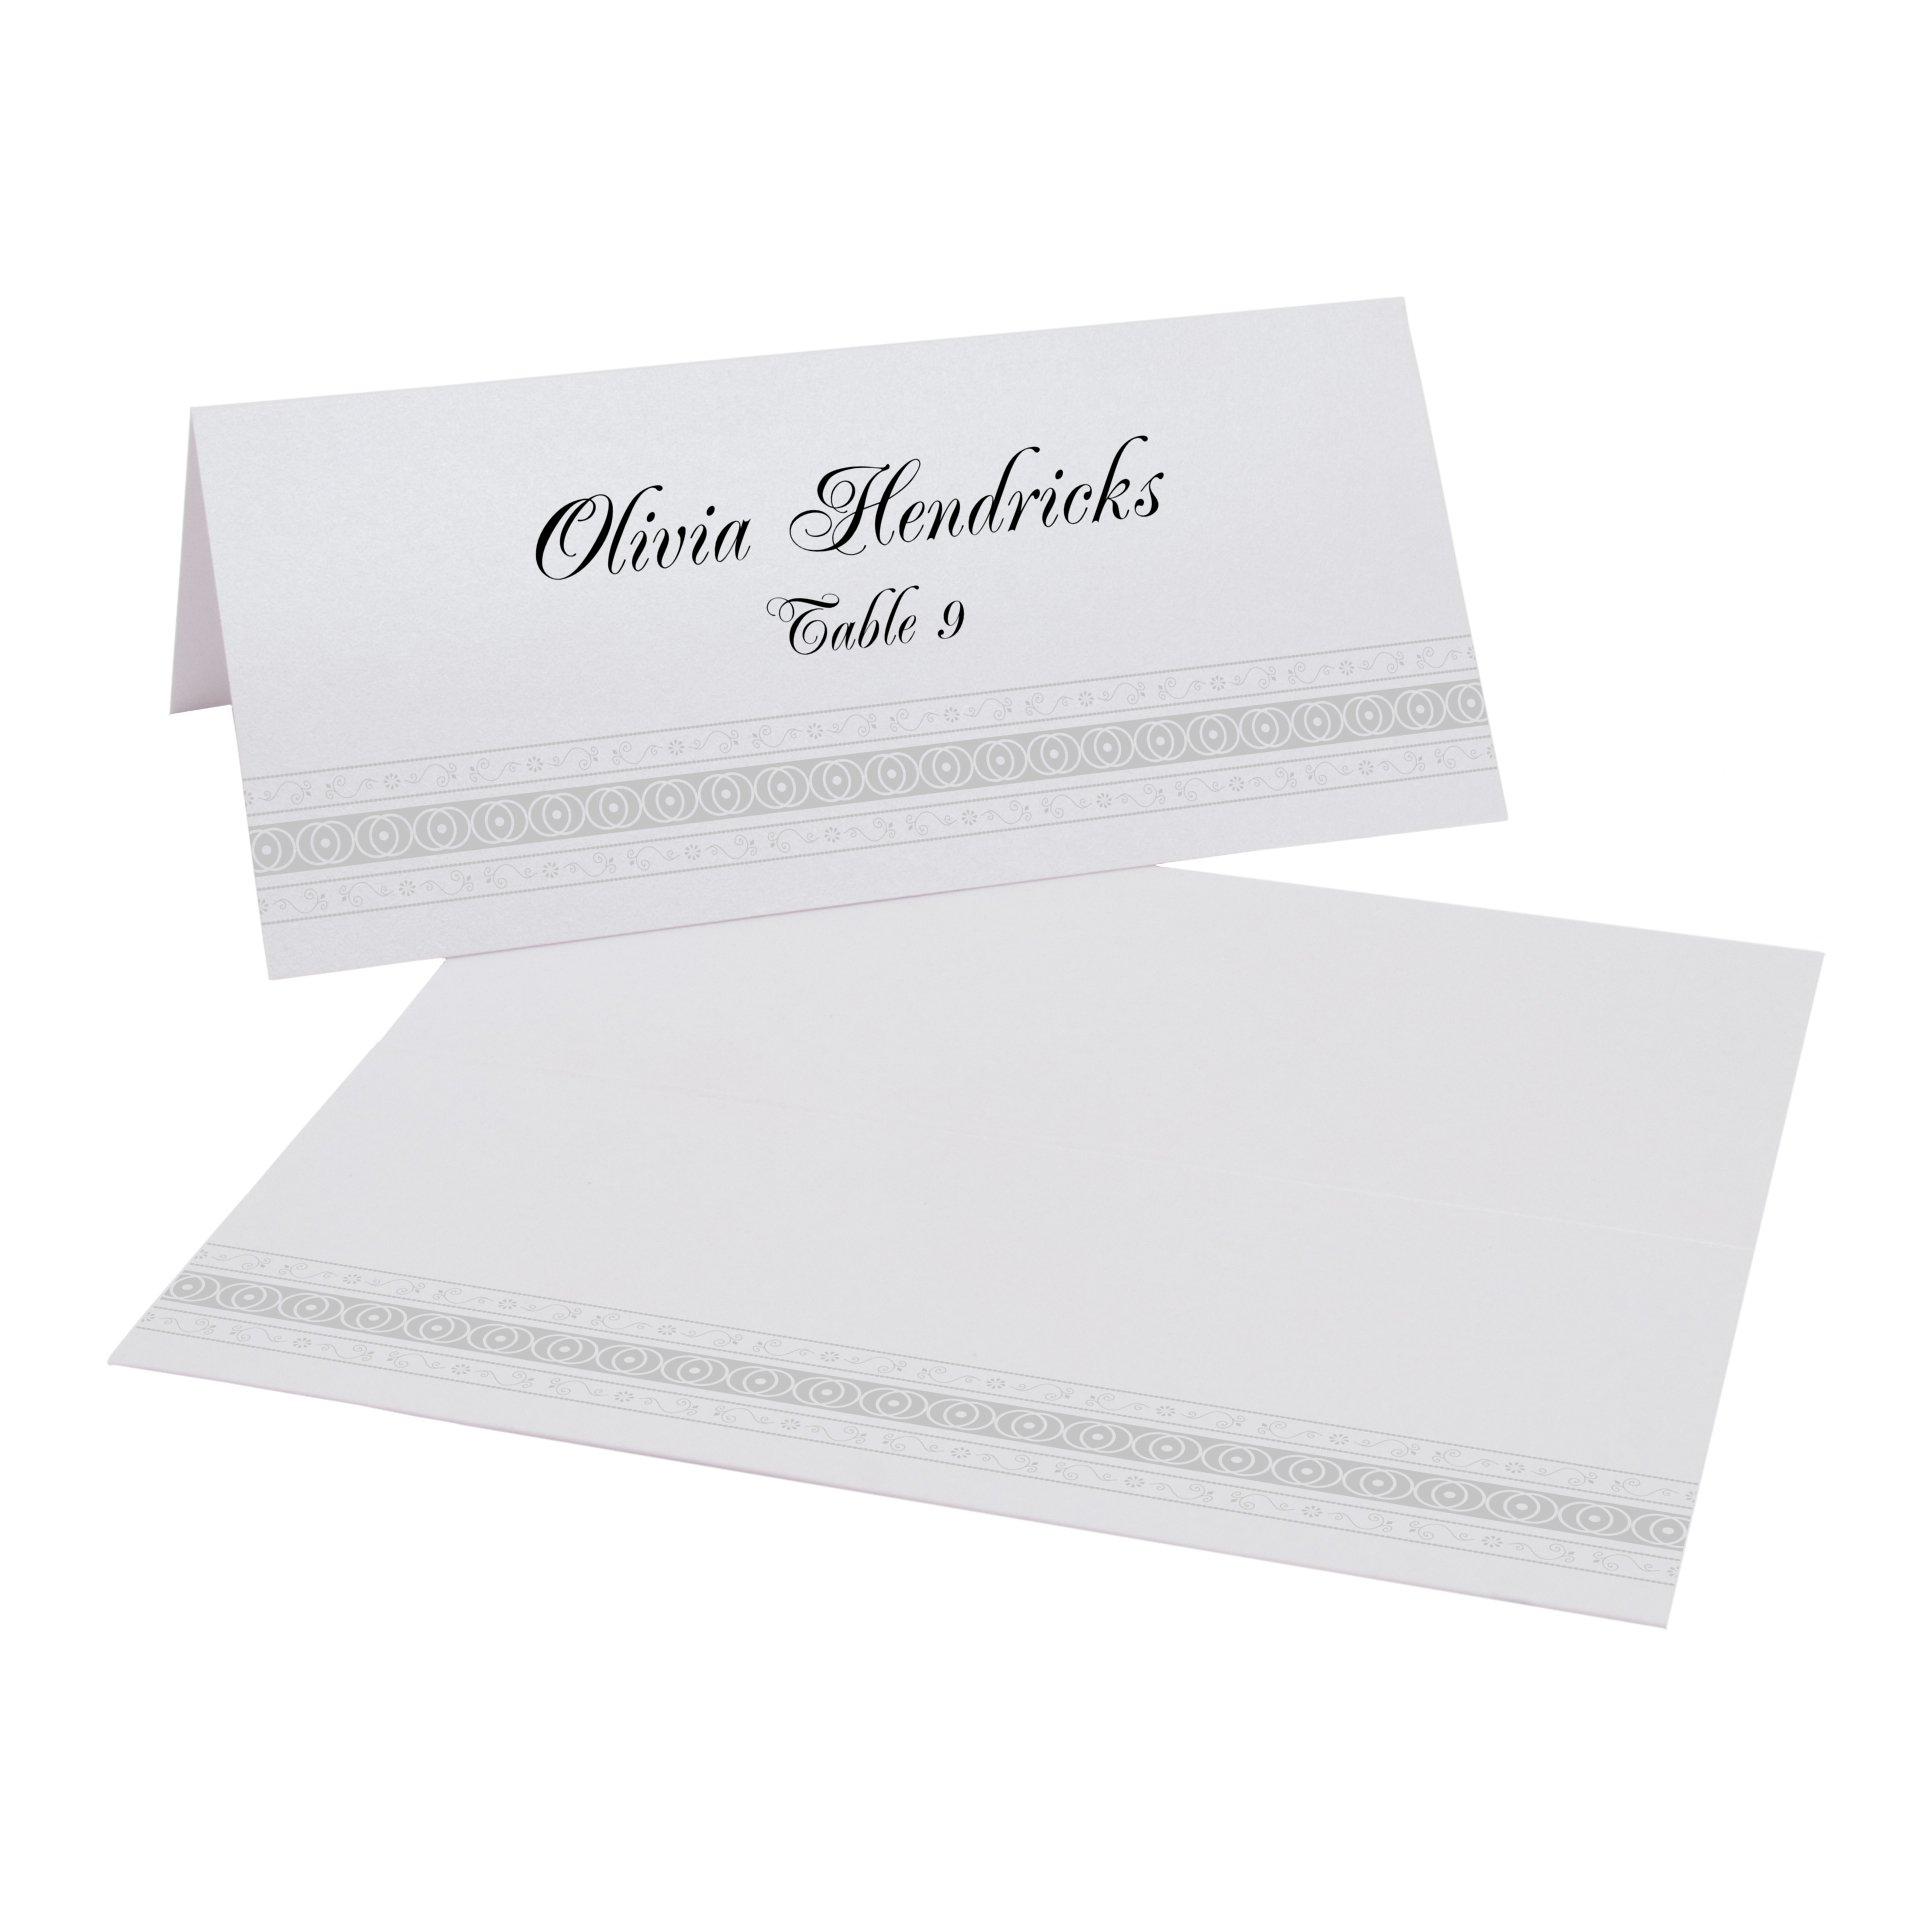 Mumbai Inspired Border Place Cards, Pearl White, Silver, Set of 375 by Documents and Designs